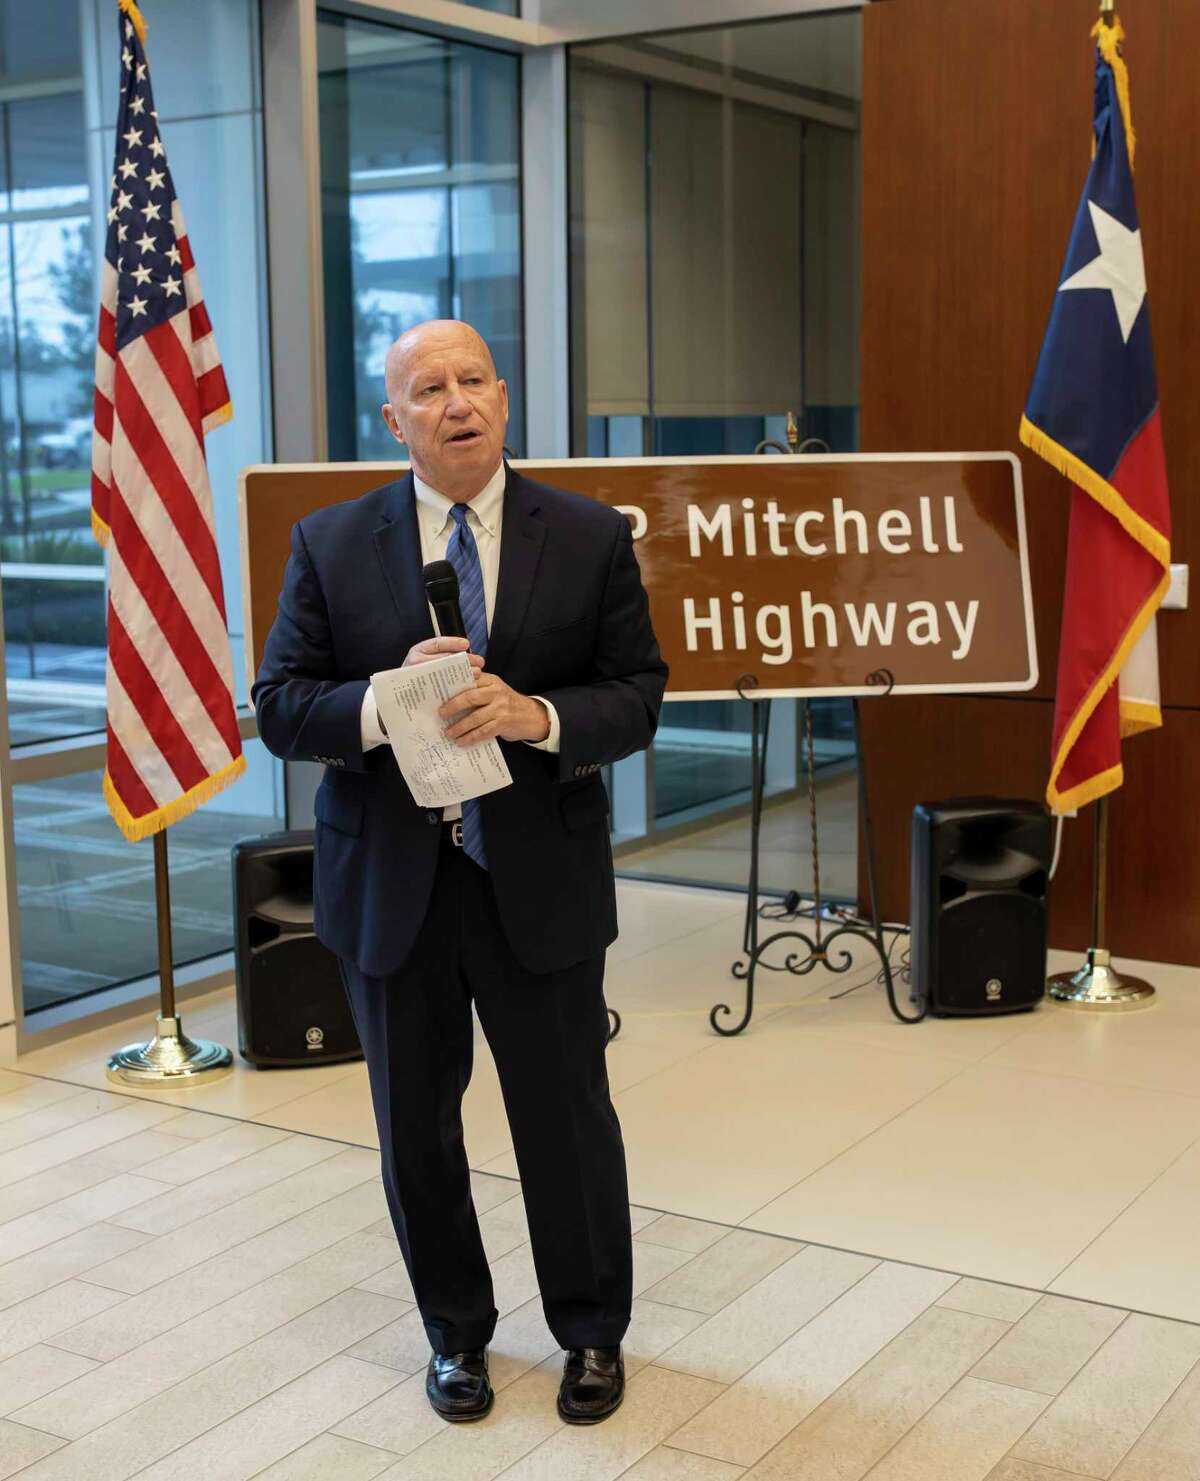 Congressman Kevin Brady speaks at the George P. Mitchell memorial highway sign revealing at Texas Rep. Steve Toth's offices in the Woodlands, Friday, Jan. 17, 2020. The founder and spiritual icon of The Woodlands - George P. Mitchell - will be one of scores of historical figures honored in the new National Garden of American Heroes created by President Donald J. Trump